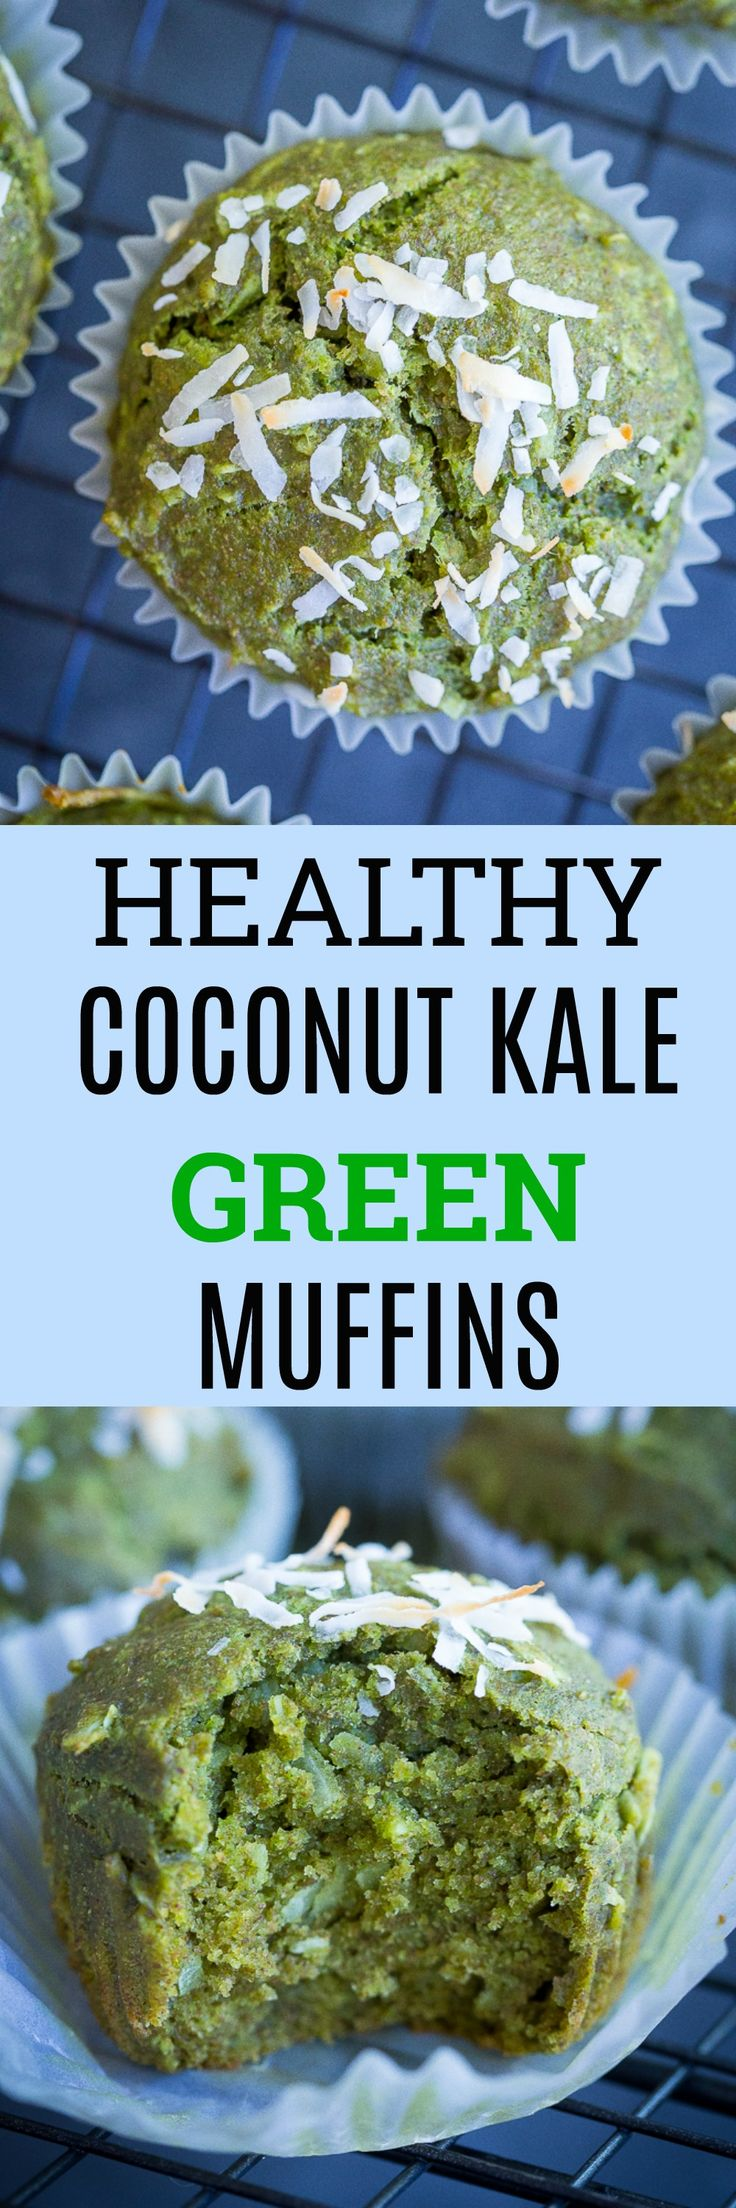 These Healthy Coconut Kale Green Muffins are packed with kale but you would never know it by the taste!  They're vegan, refined sugar free and perfect for sneaking in more veggies to your children's diet!  Freezer friendly too!